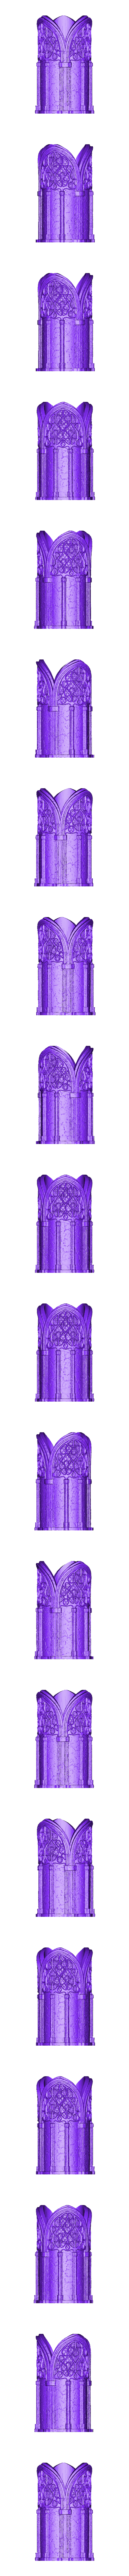 Candle_Holder.obj Download 3DS file Gothic Candle Holder • Object to 3D print, tolgaaxu